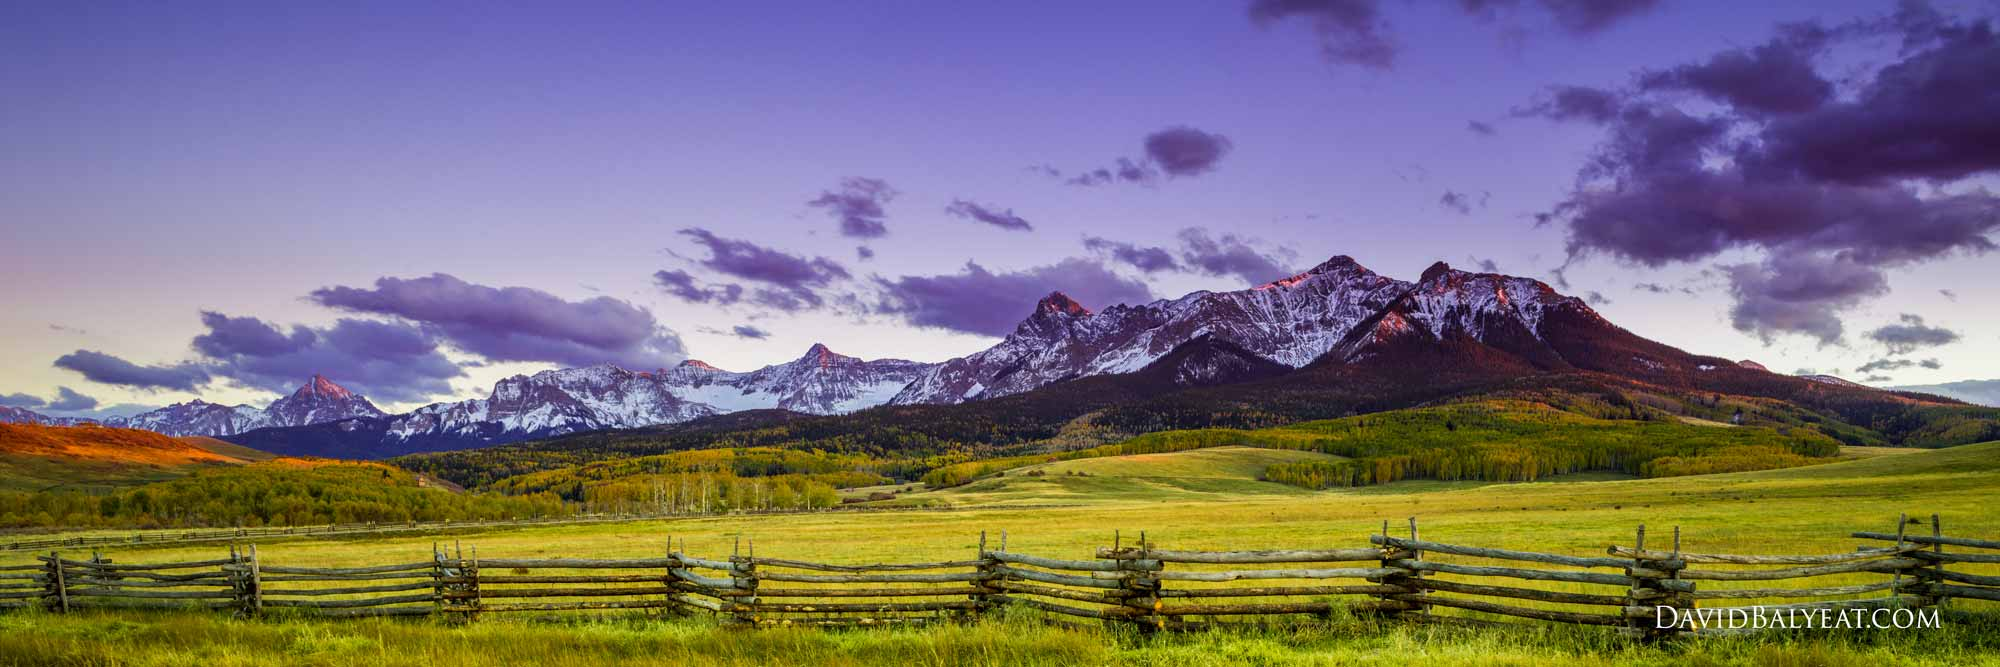 Mountains Colorado panoramic rustic split rail fence high-definition HD professional landscape photography